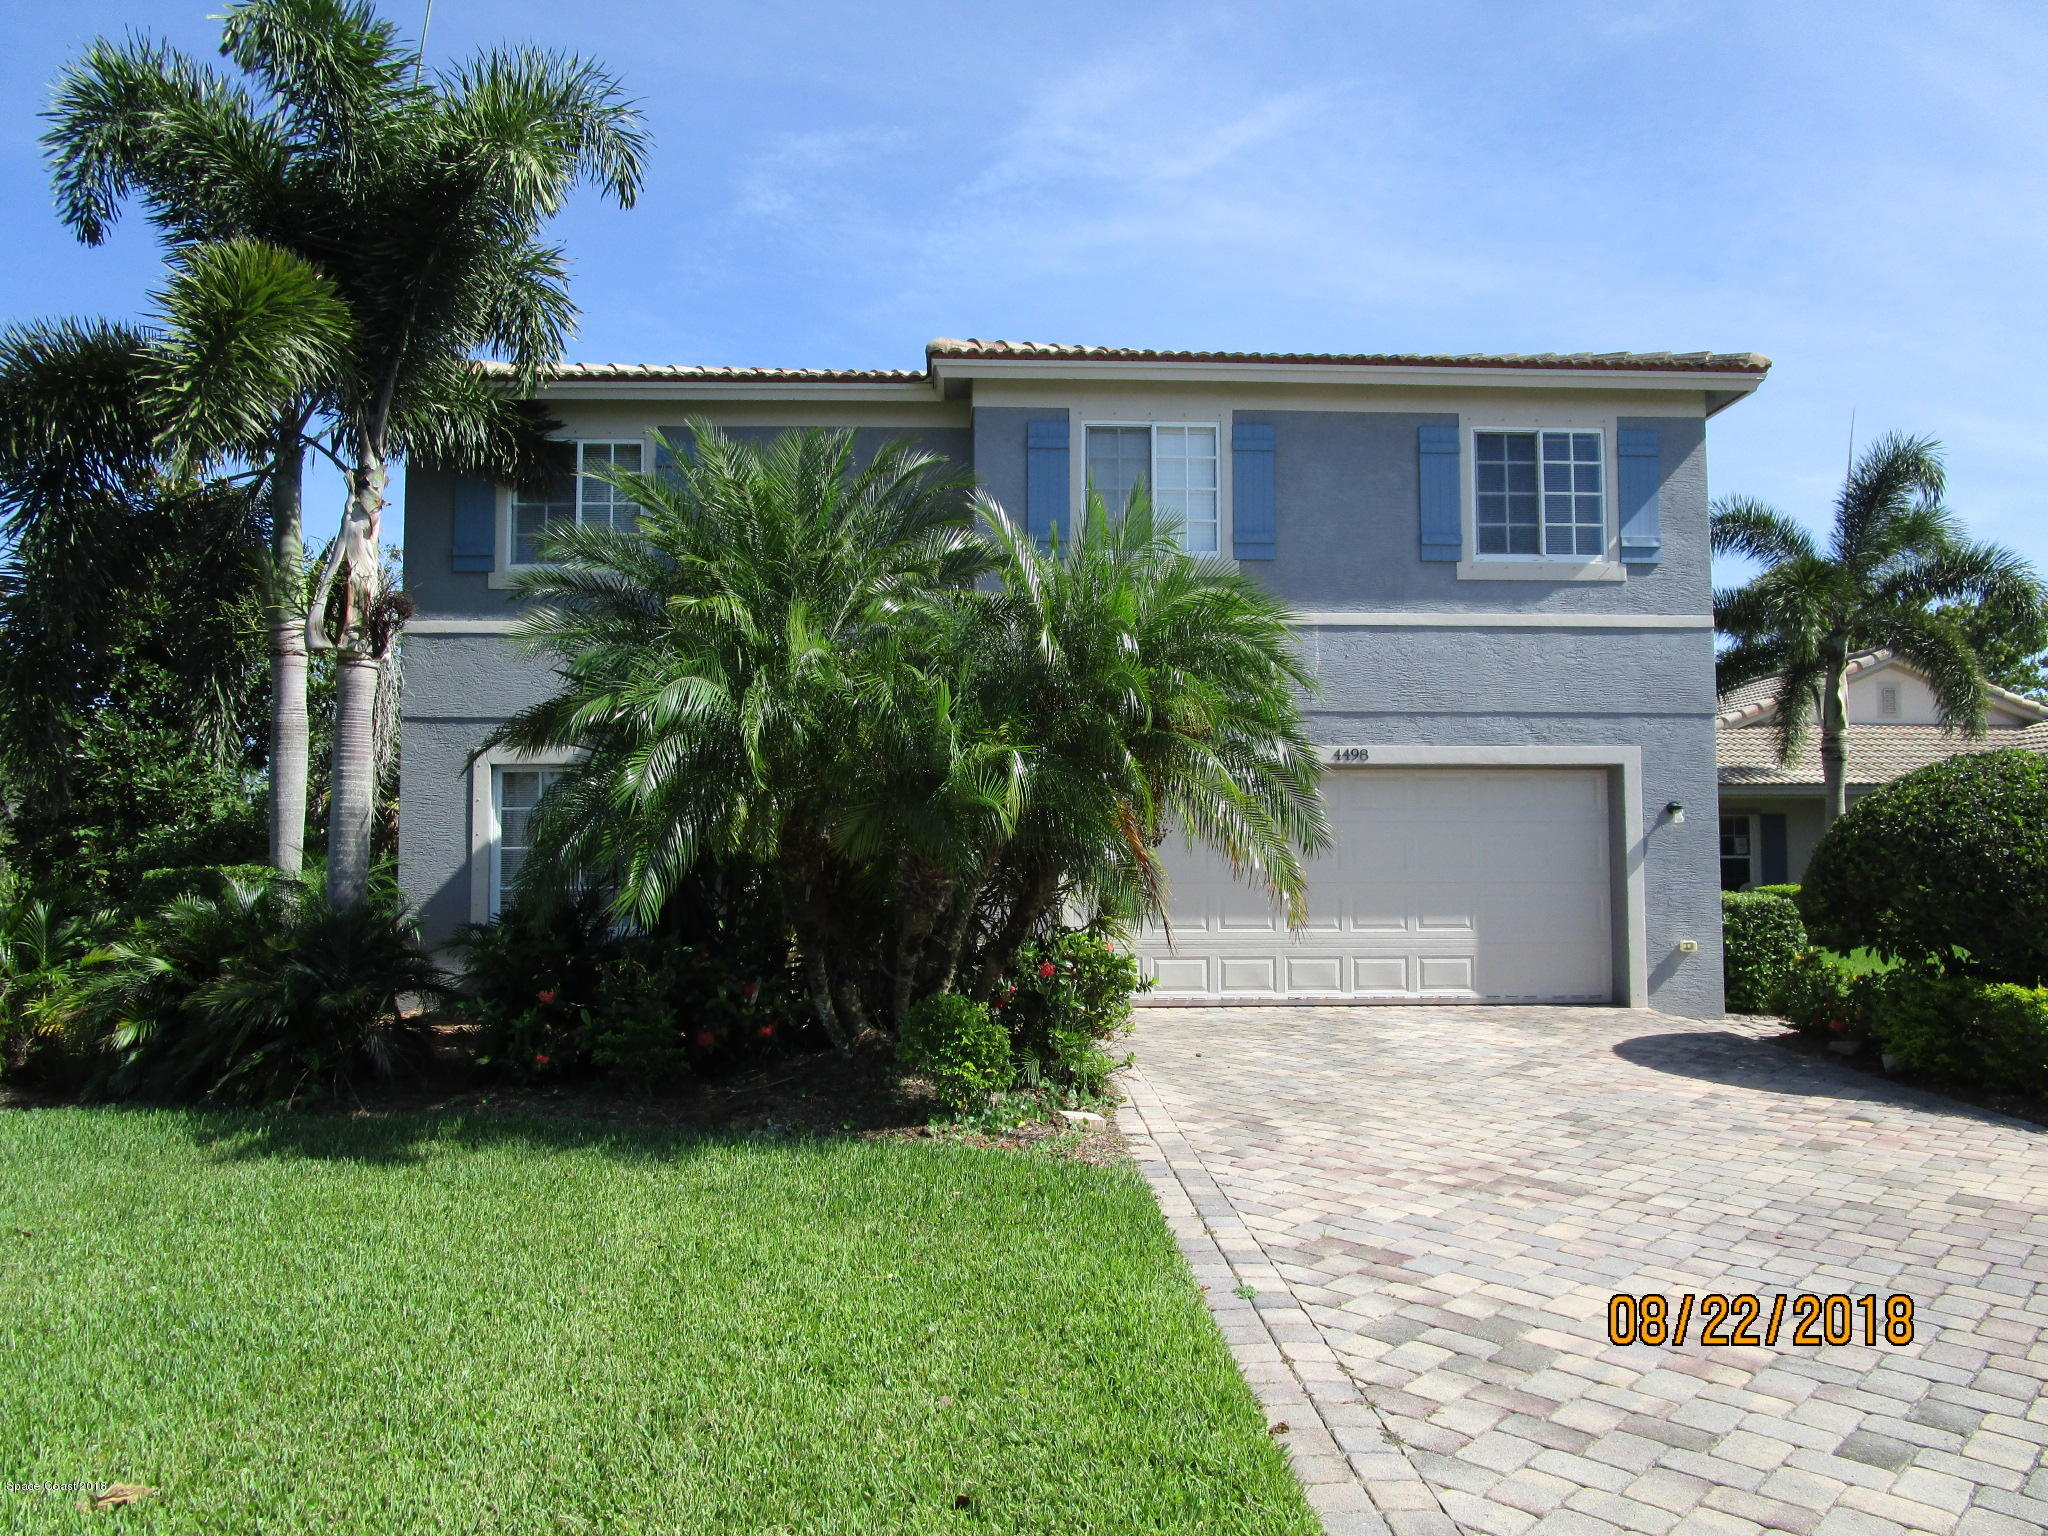 Single Family Home for Sale at 4498 56th 4498 56th Vero Beach, Florida 32967 United States